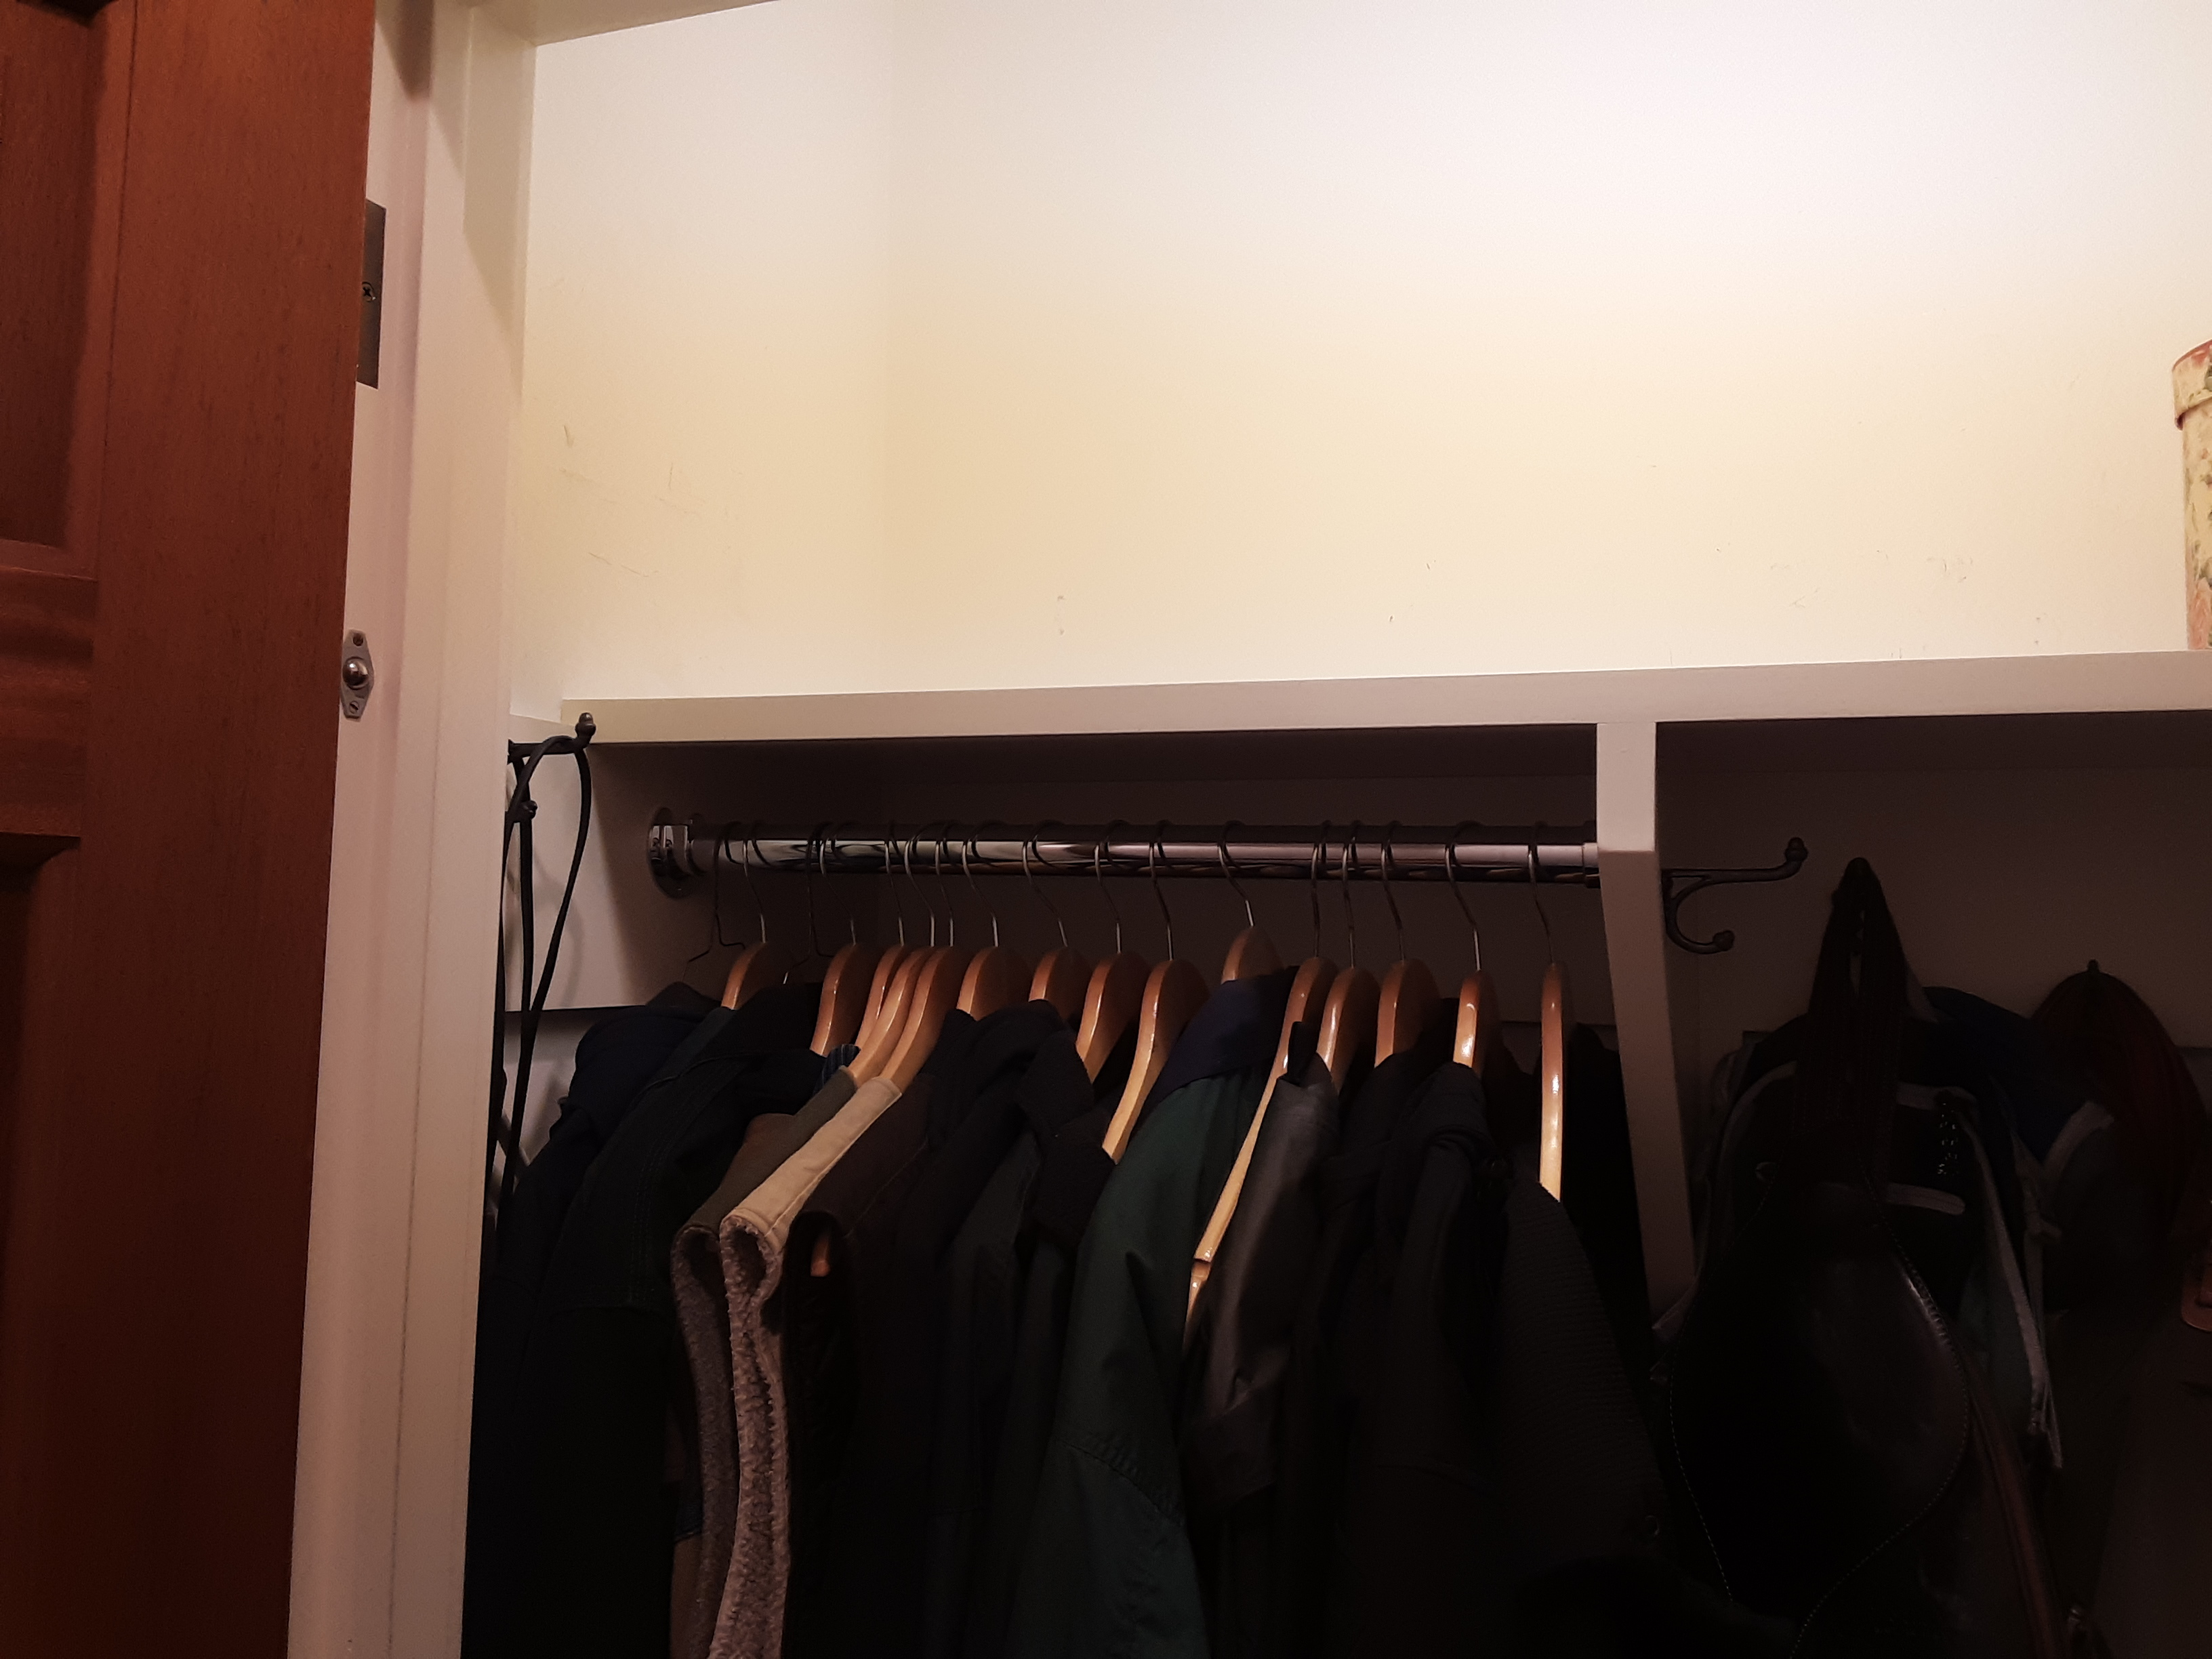 Closet shelf clutter cleared with empty space available!